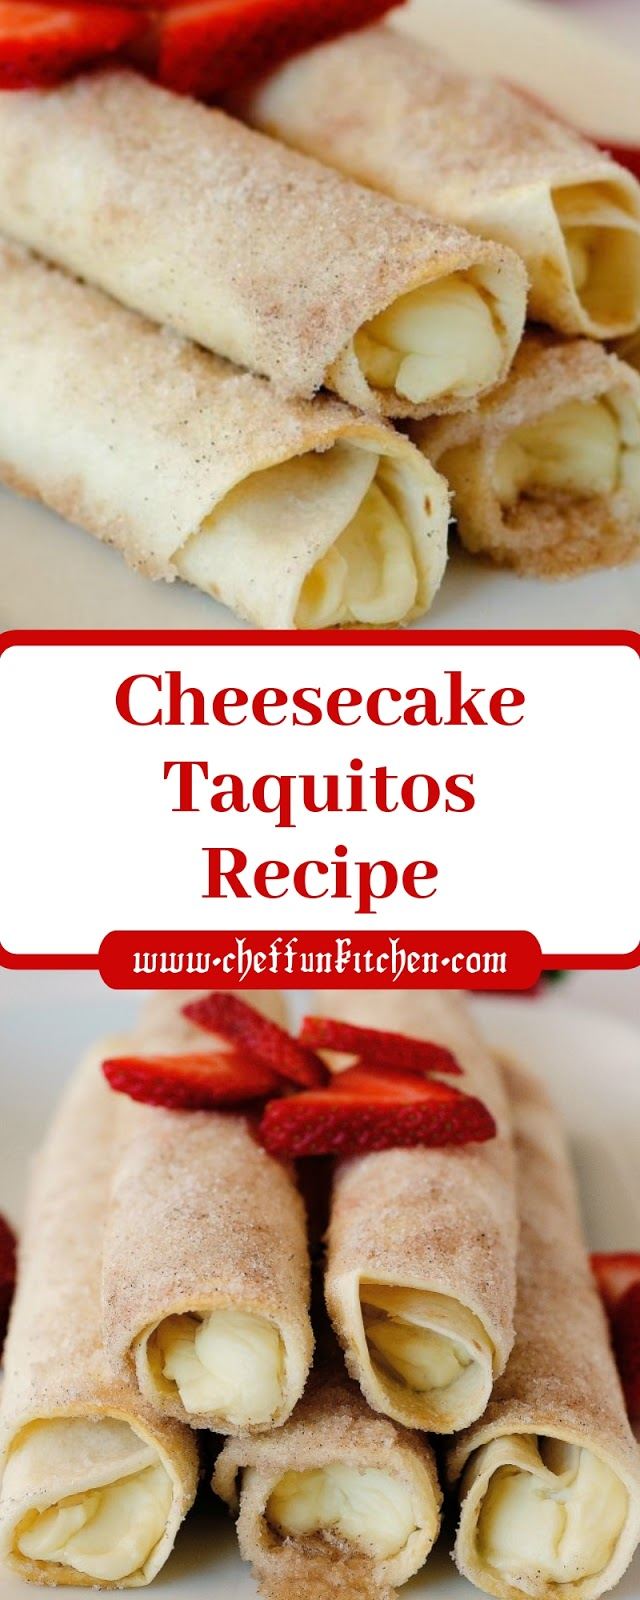 Cheesecake Taquitos Recipe